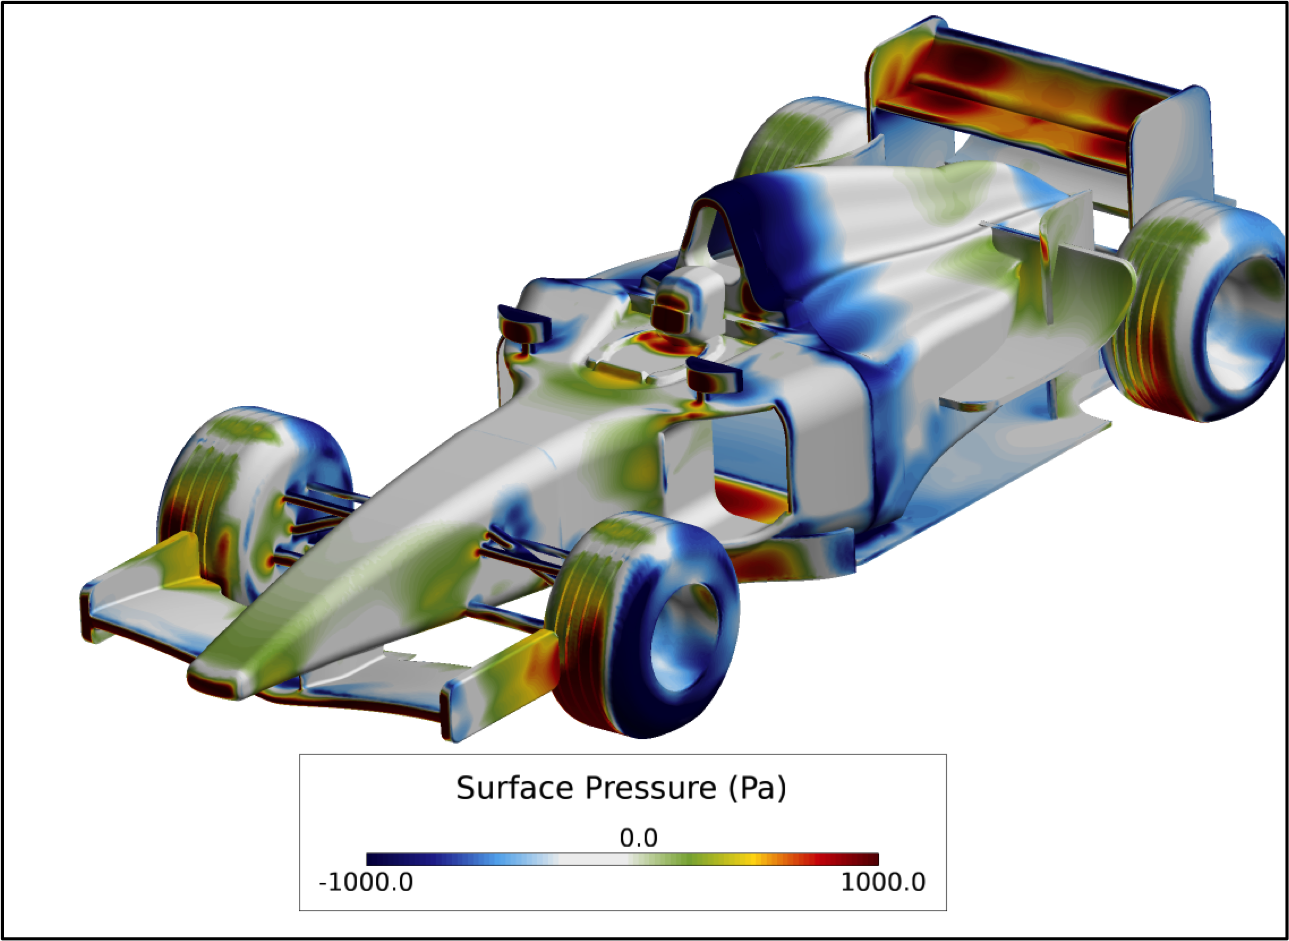 Figure 1. Results from a steady state CFD simulation showing contours of surface pressure on a nominal open wheel race car.